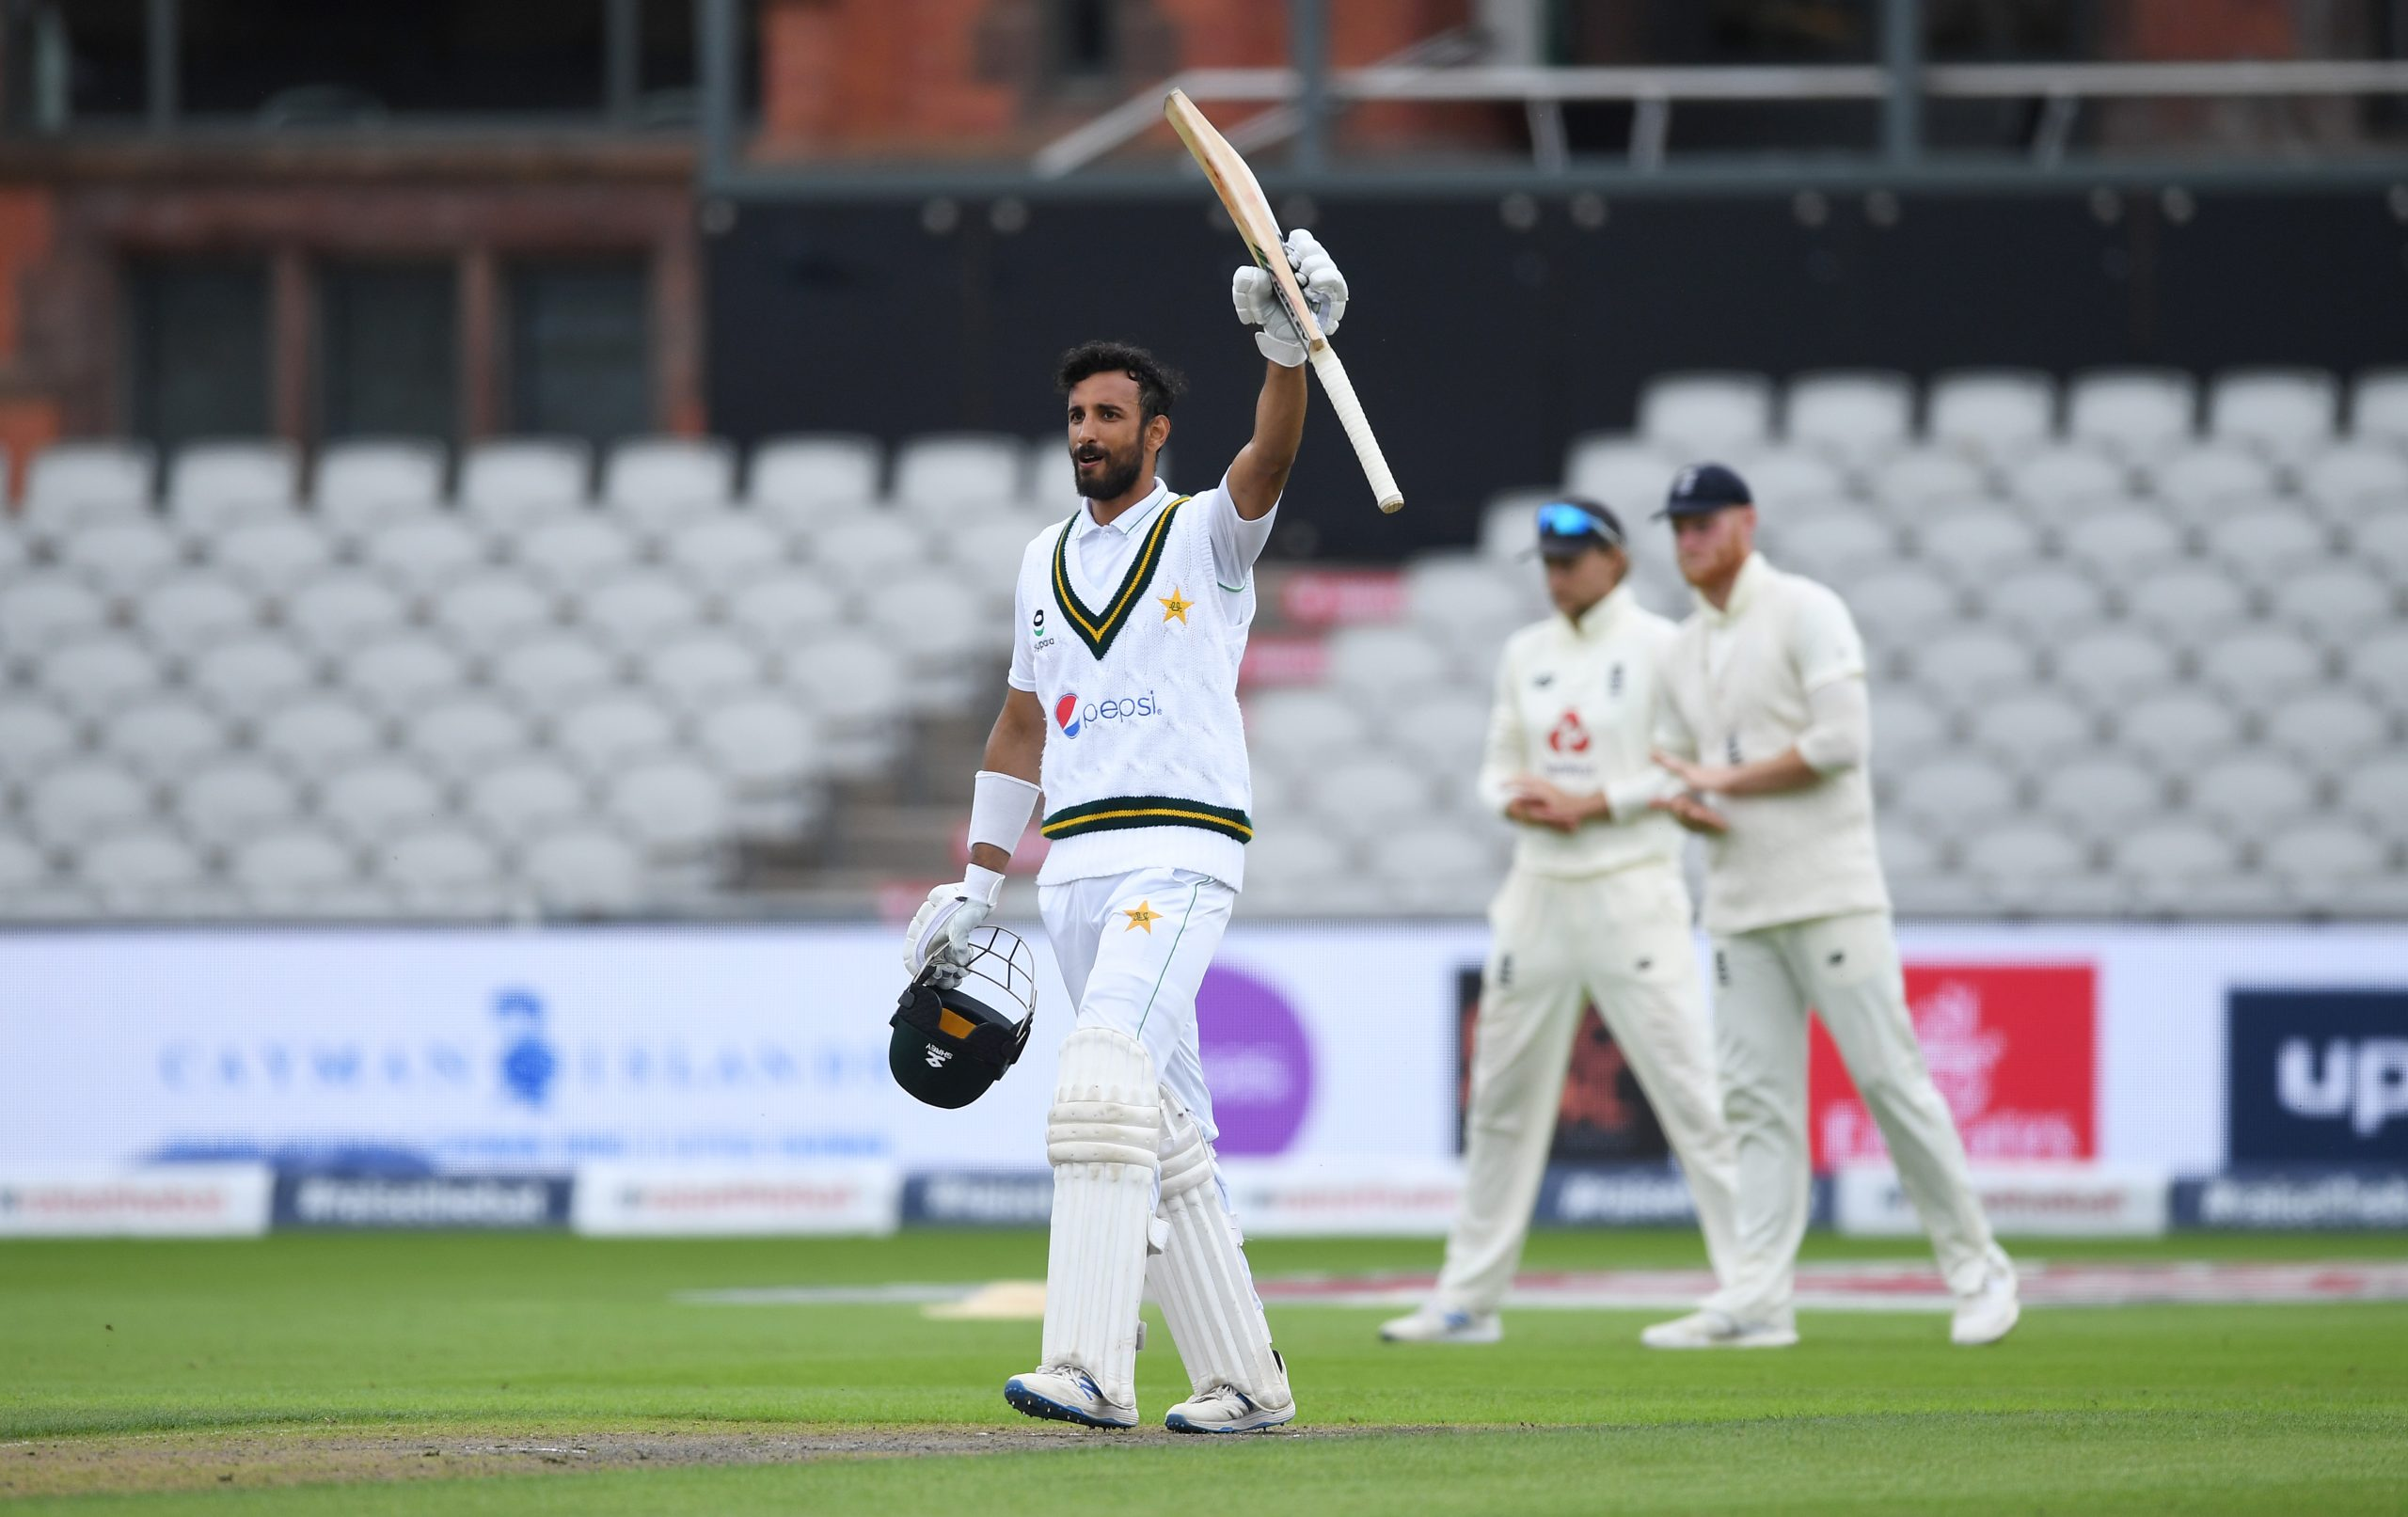 Masood of Pakistan celebrates reaching his century during Day Two of the 1st #RaiseTheBat Test Match between England and Pakistan at Emirates Old Trafford on August 06, 2020 in Manchester, England. (Photo: Gareth Copley/Getty Images for ECB).